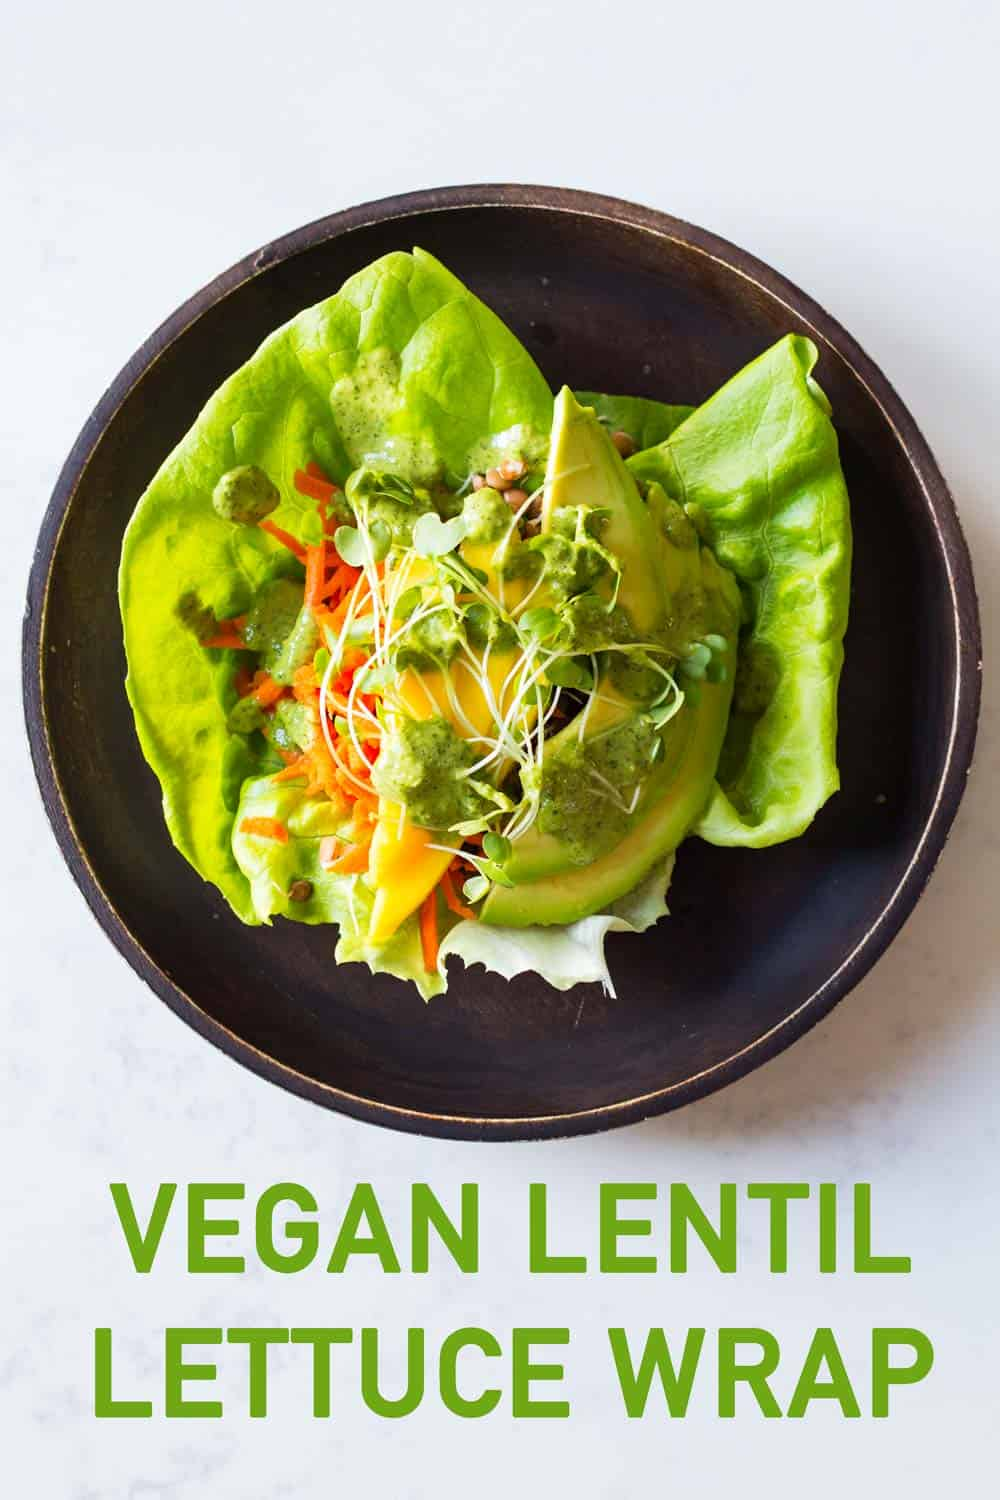 A healthy lettuce wraps recipe that will blow your mind. It's one of the most delicious things I've ever created! Lentils, avocado, mango, carrot and an out of this world Tahini Herb Sauce.